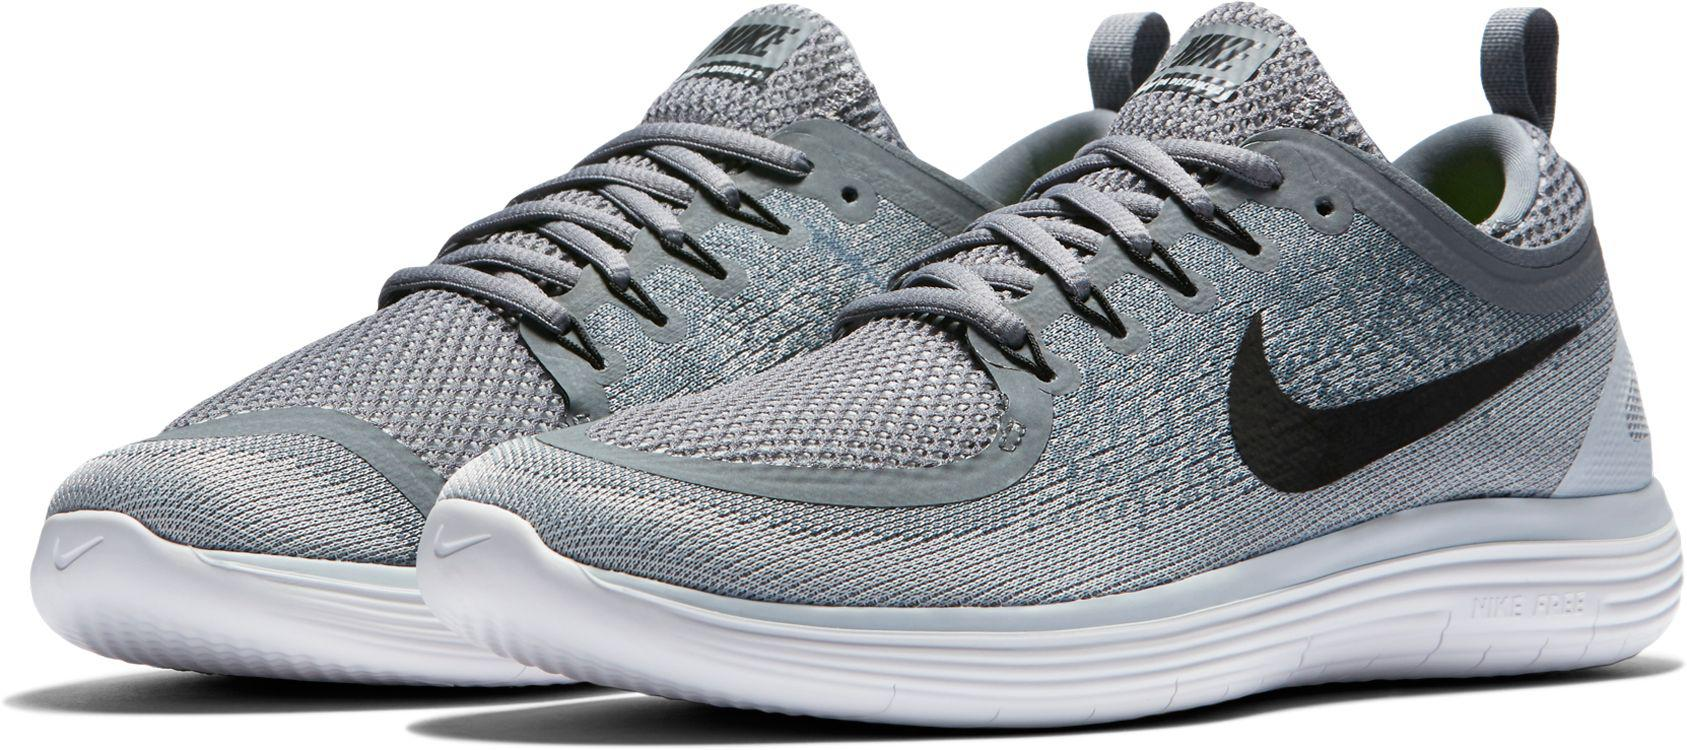 6b98a7017997 Lyst - Nike Free Rn Distance 2 Running Shoes in Gray for Men